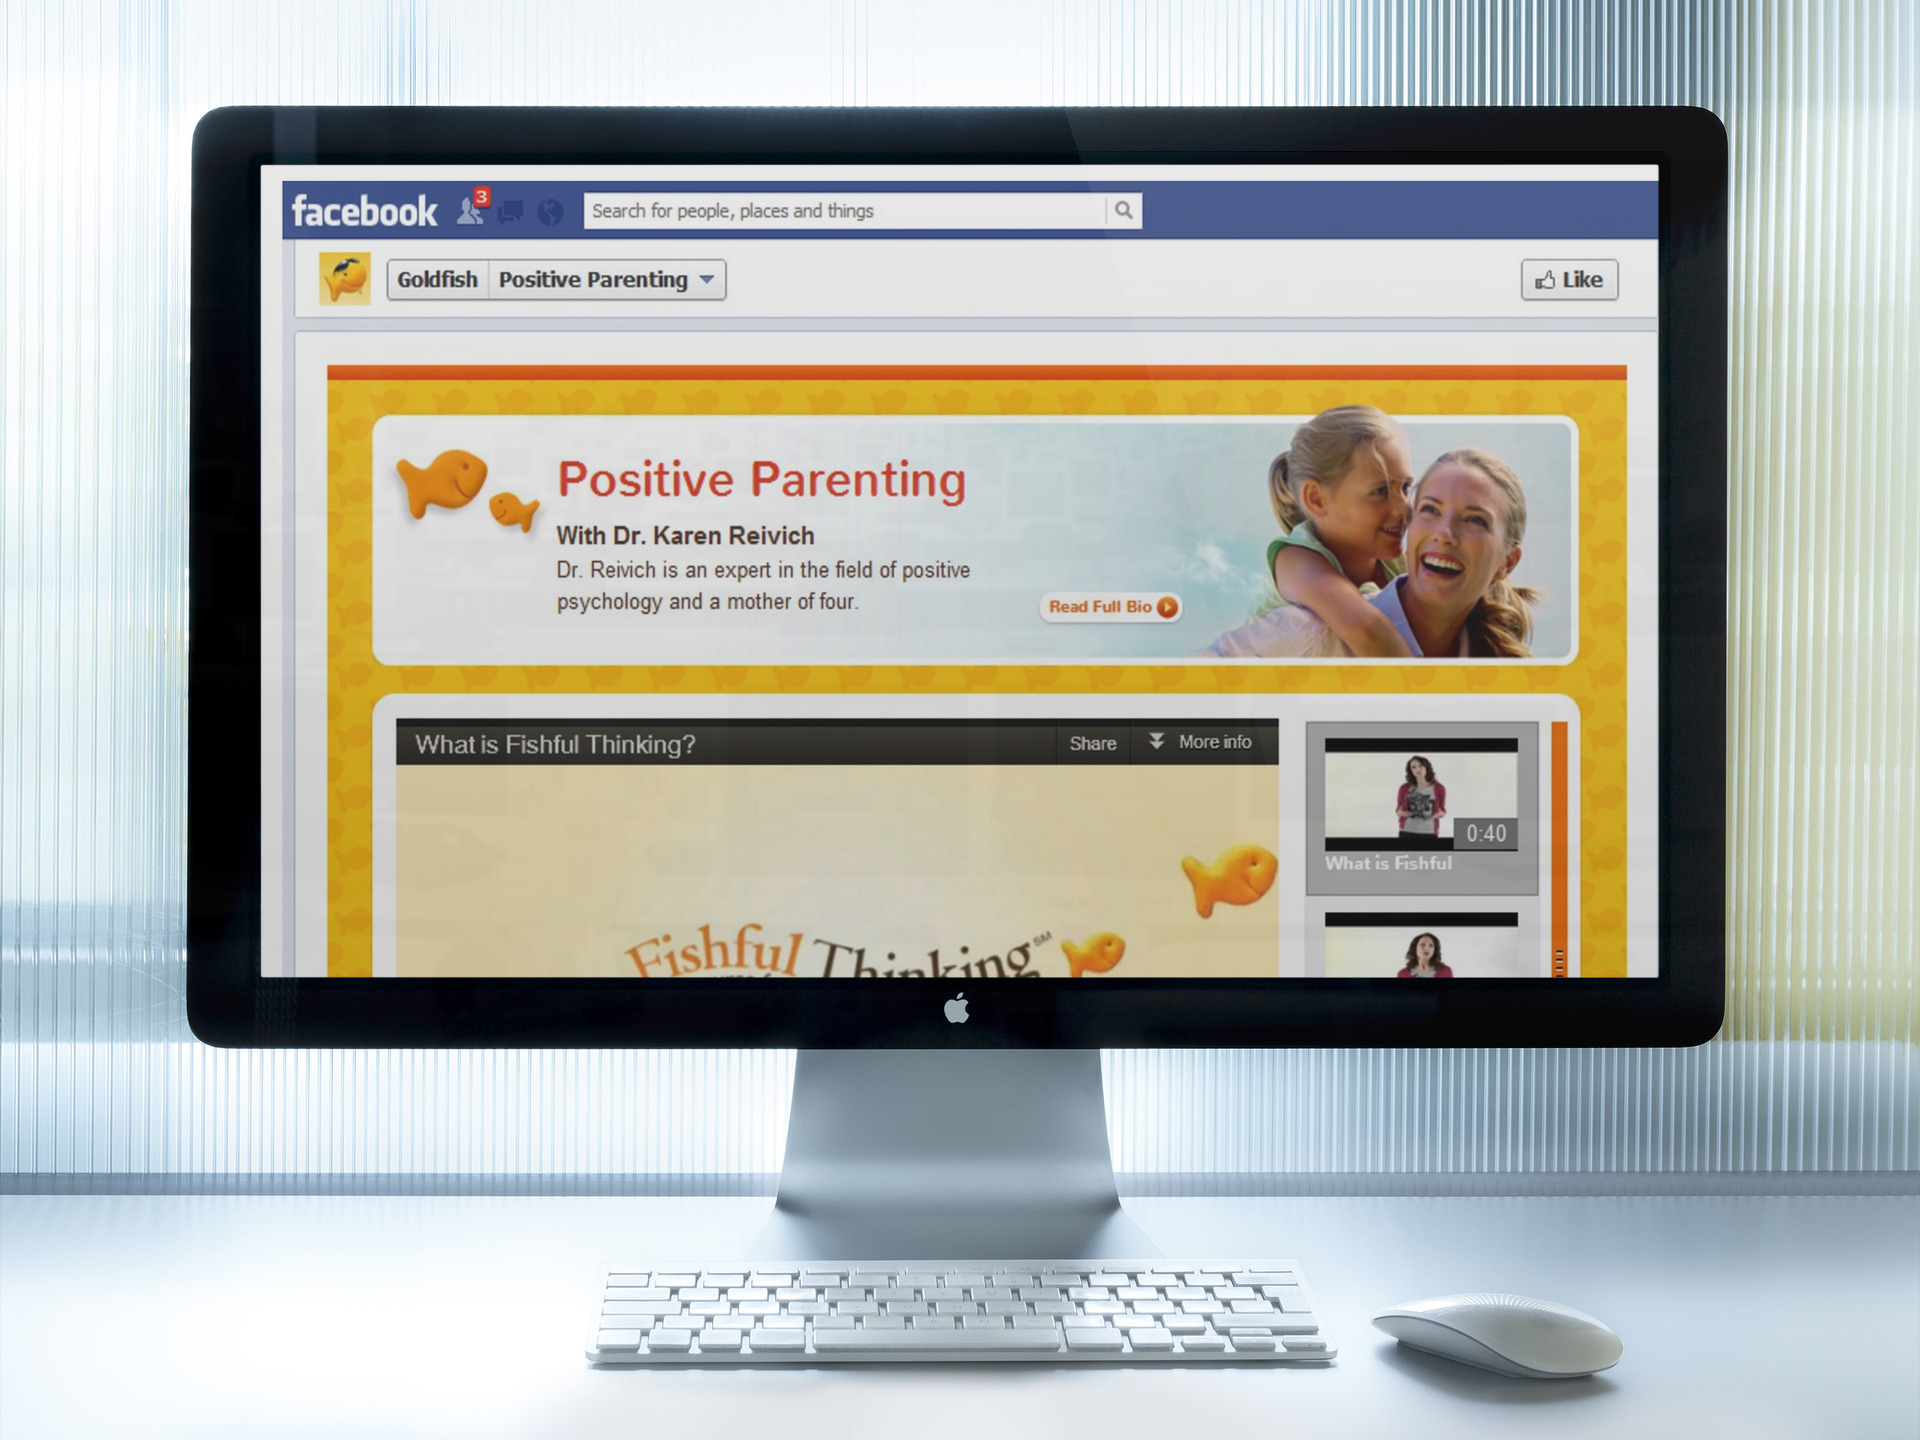 Pepperidge Farm: Goldfish Positive Parenting